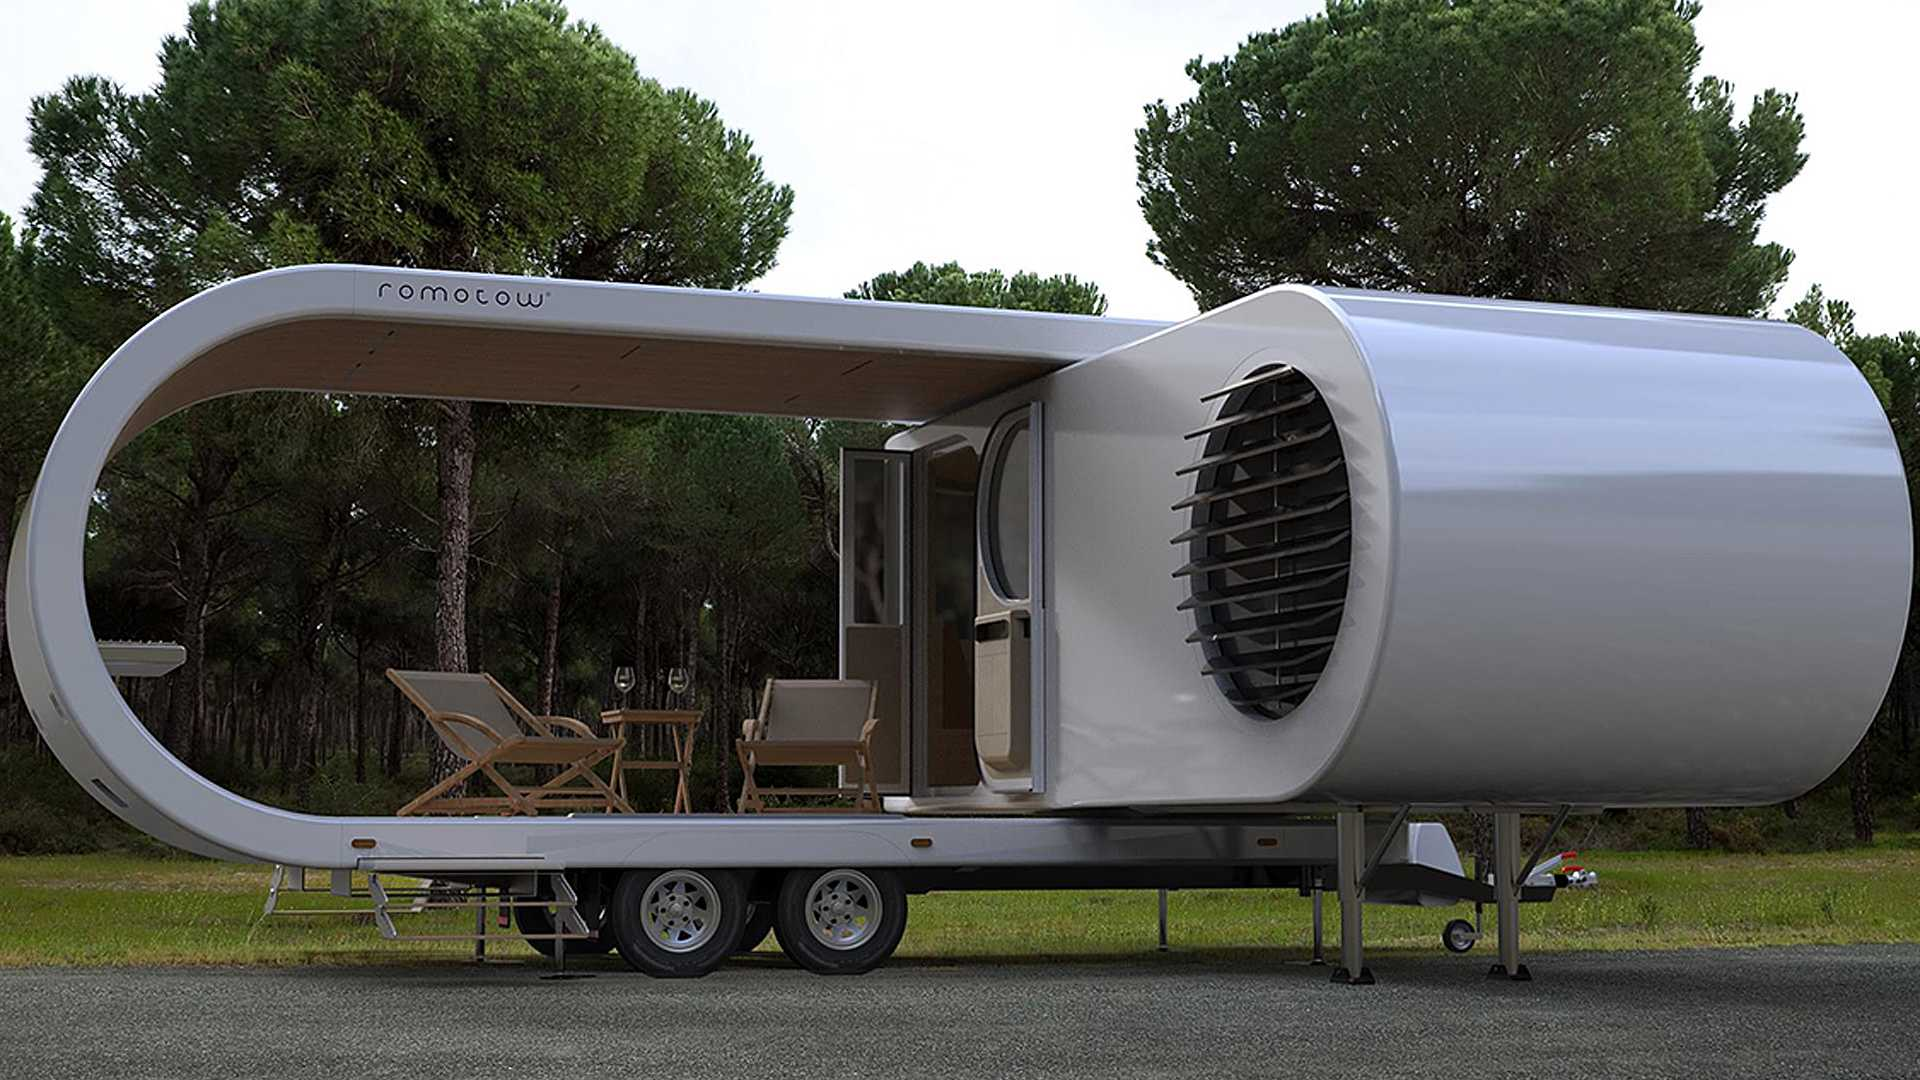 Romotow Camper Folds Up Like A Paper Clip